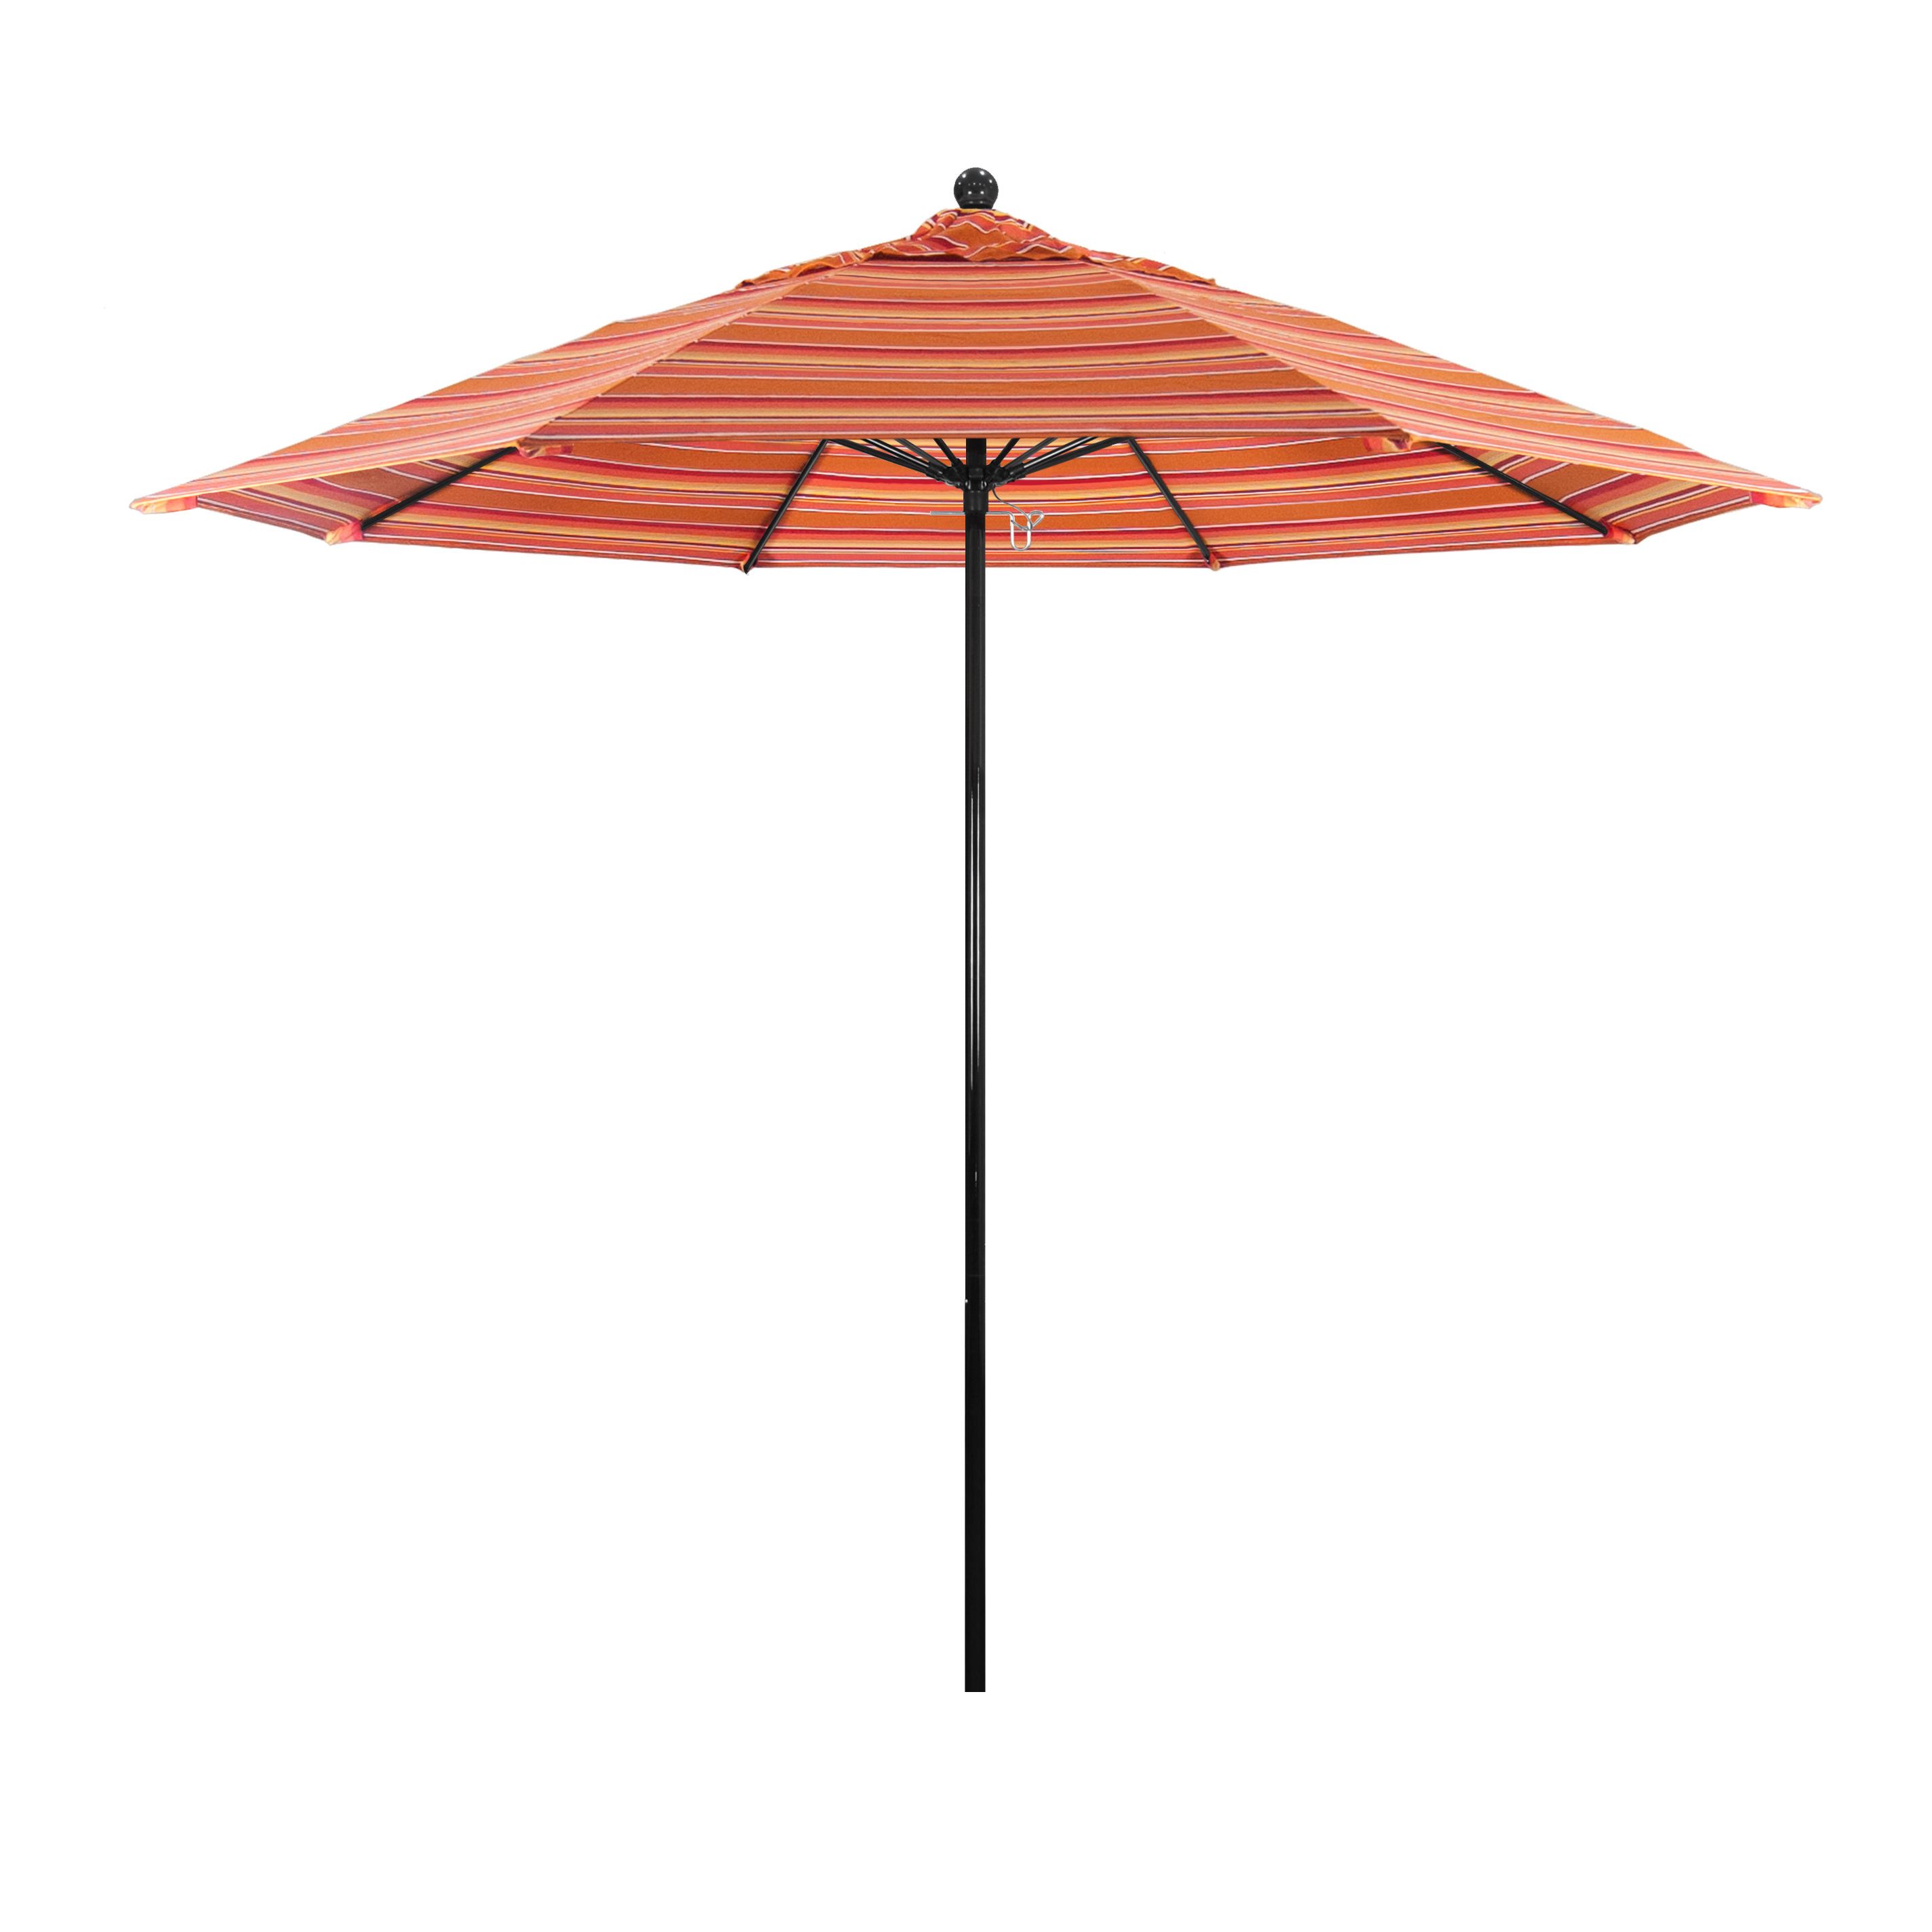 Oceanside Series 9' Market Sunbrella Umbrella Intended For Most Up To Date Crowland Market Sunbrella Umbrellas (View 14 of 20)